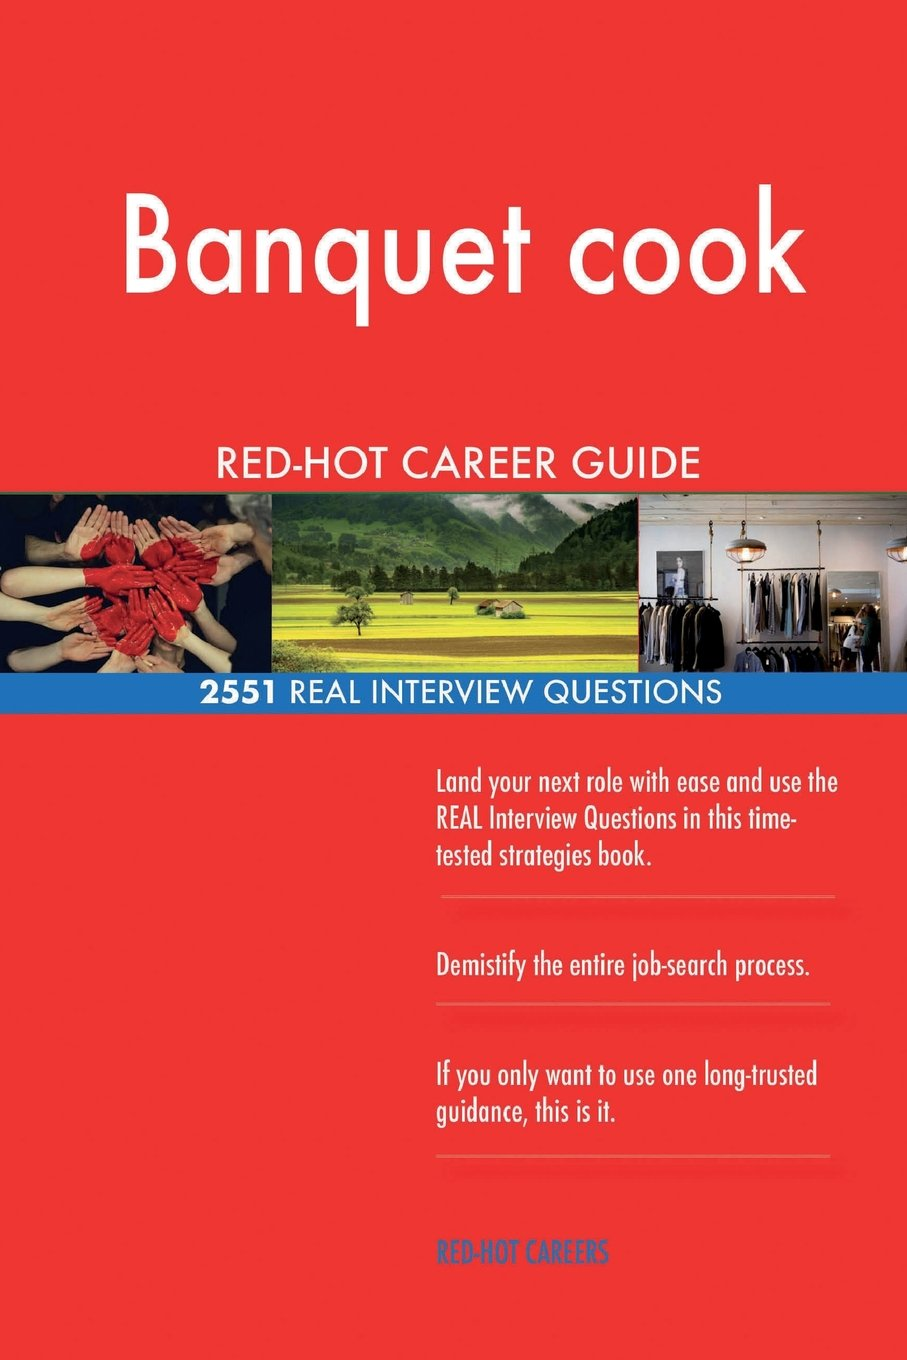 Banquet Cook RED HOT Career Guide 2551 REAL Interview Questions Paperback May 17 2018